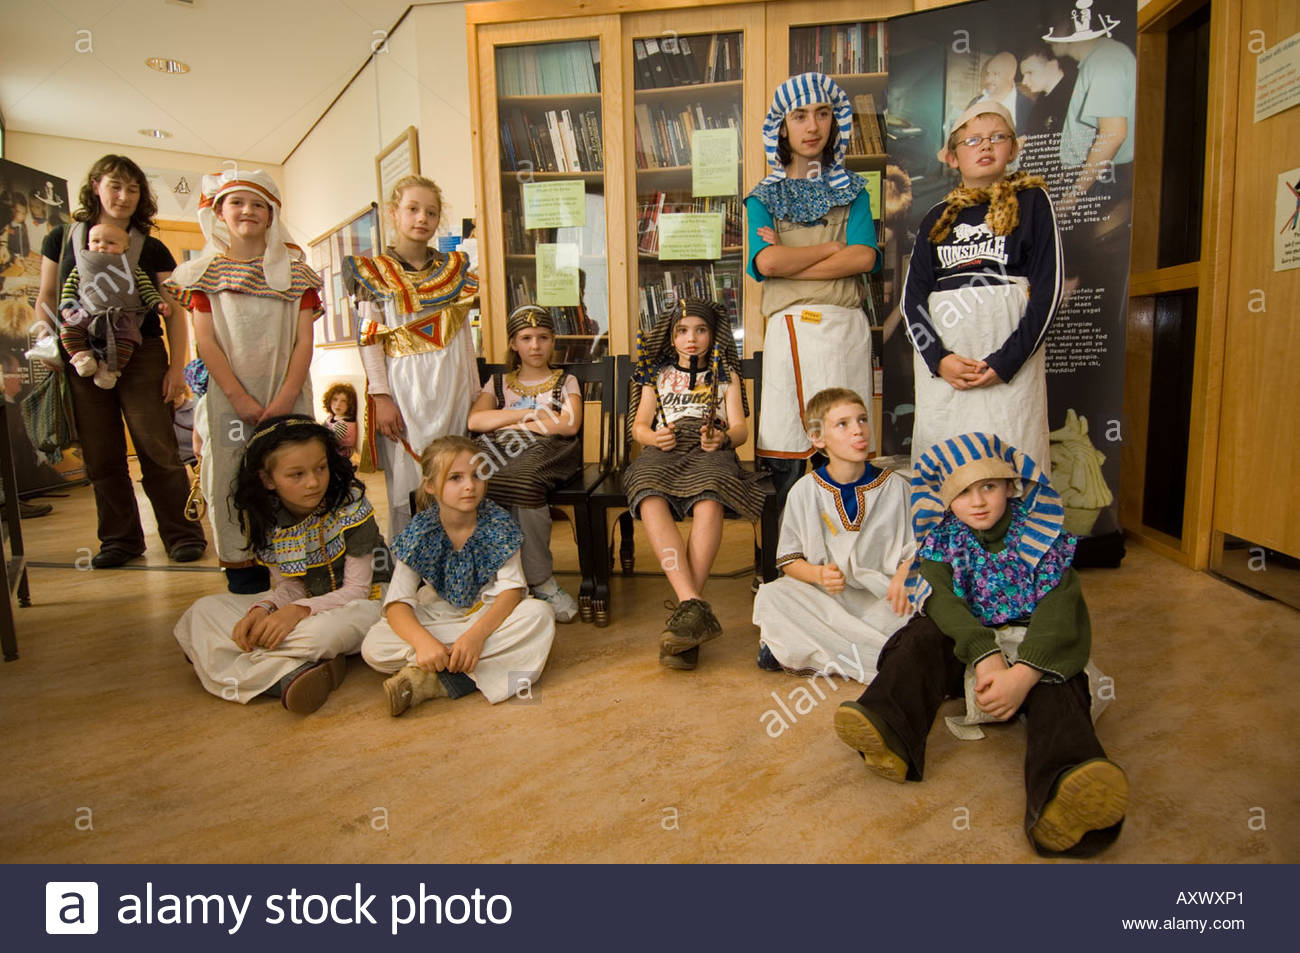 Egypt Centre Swansea (Abertawe), Group of children dressed as Egyptian rulers and servants at The ...